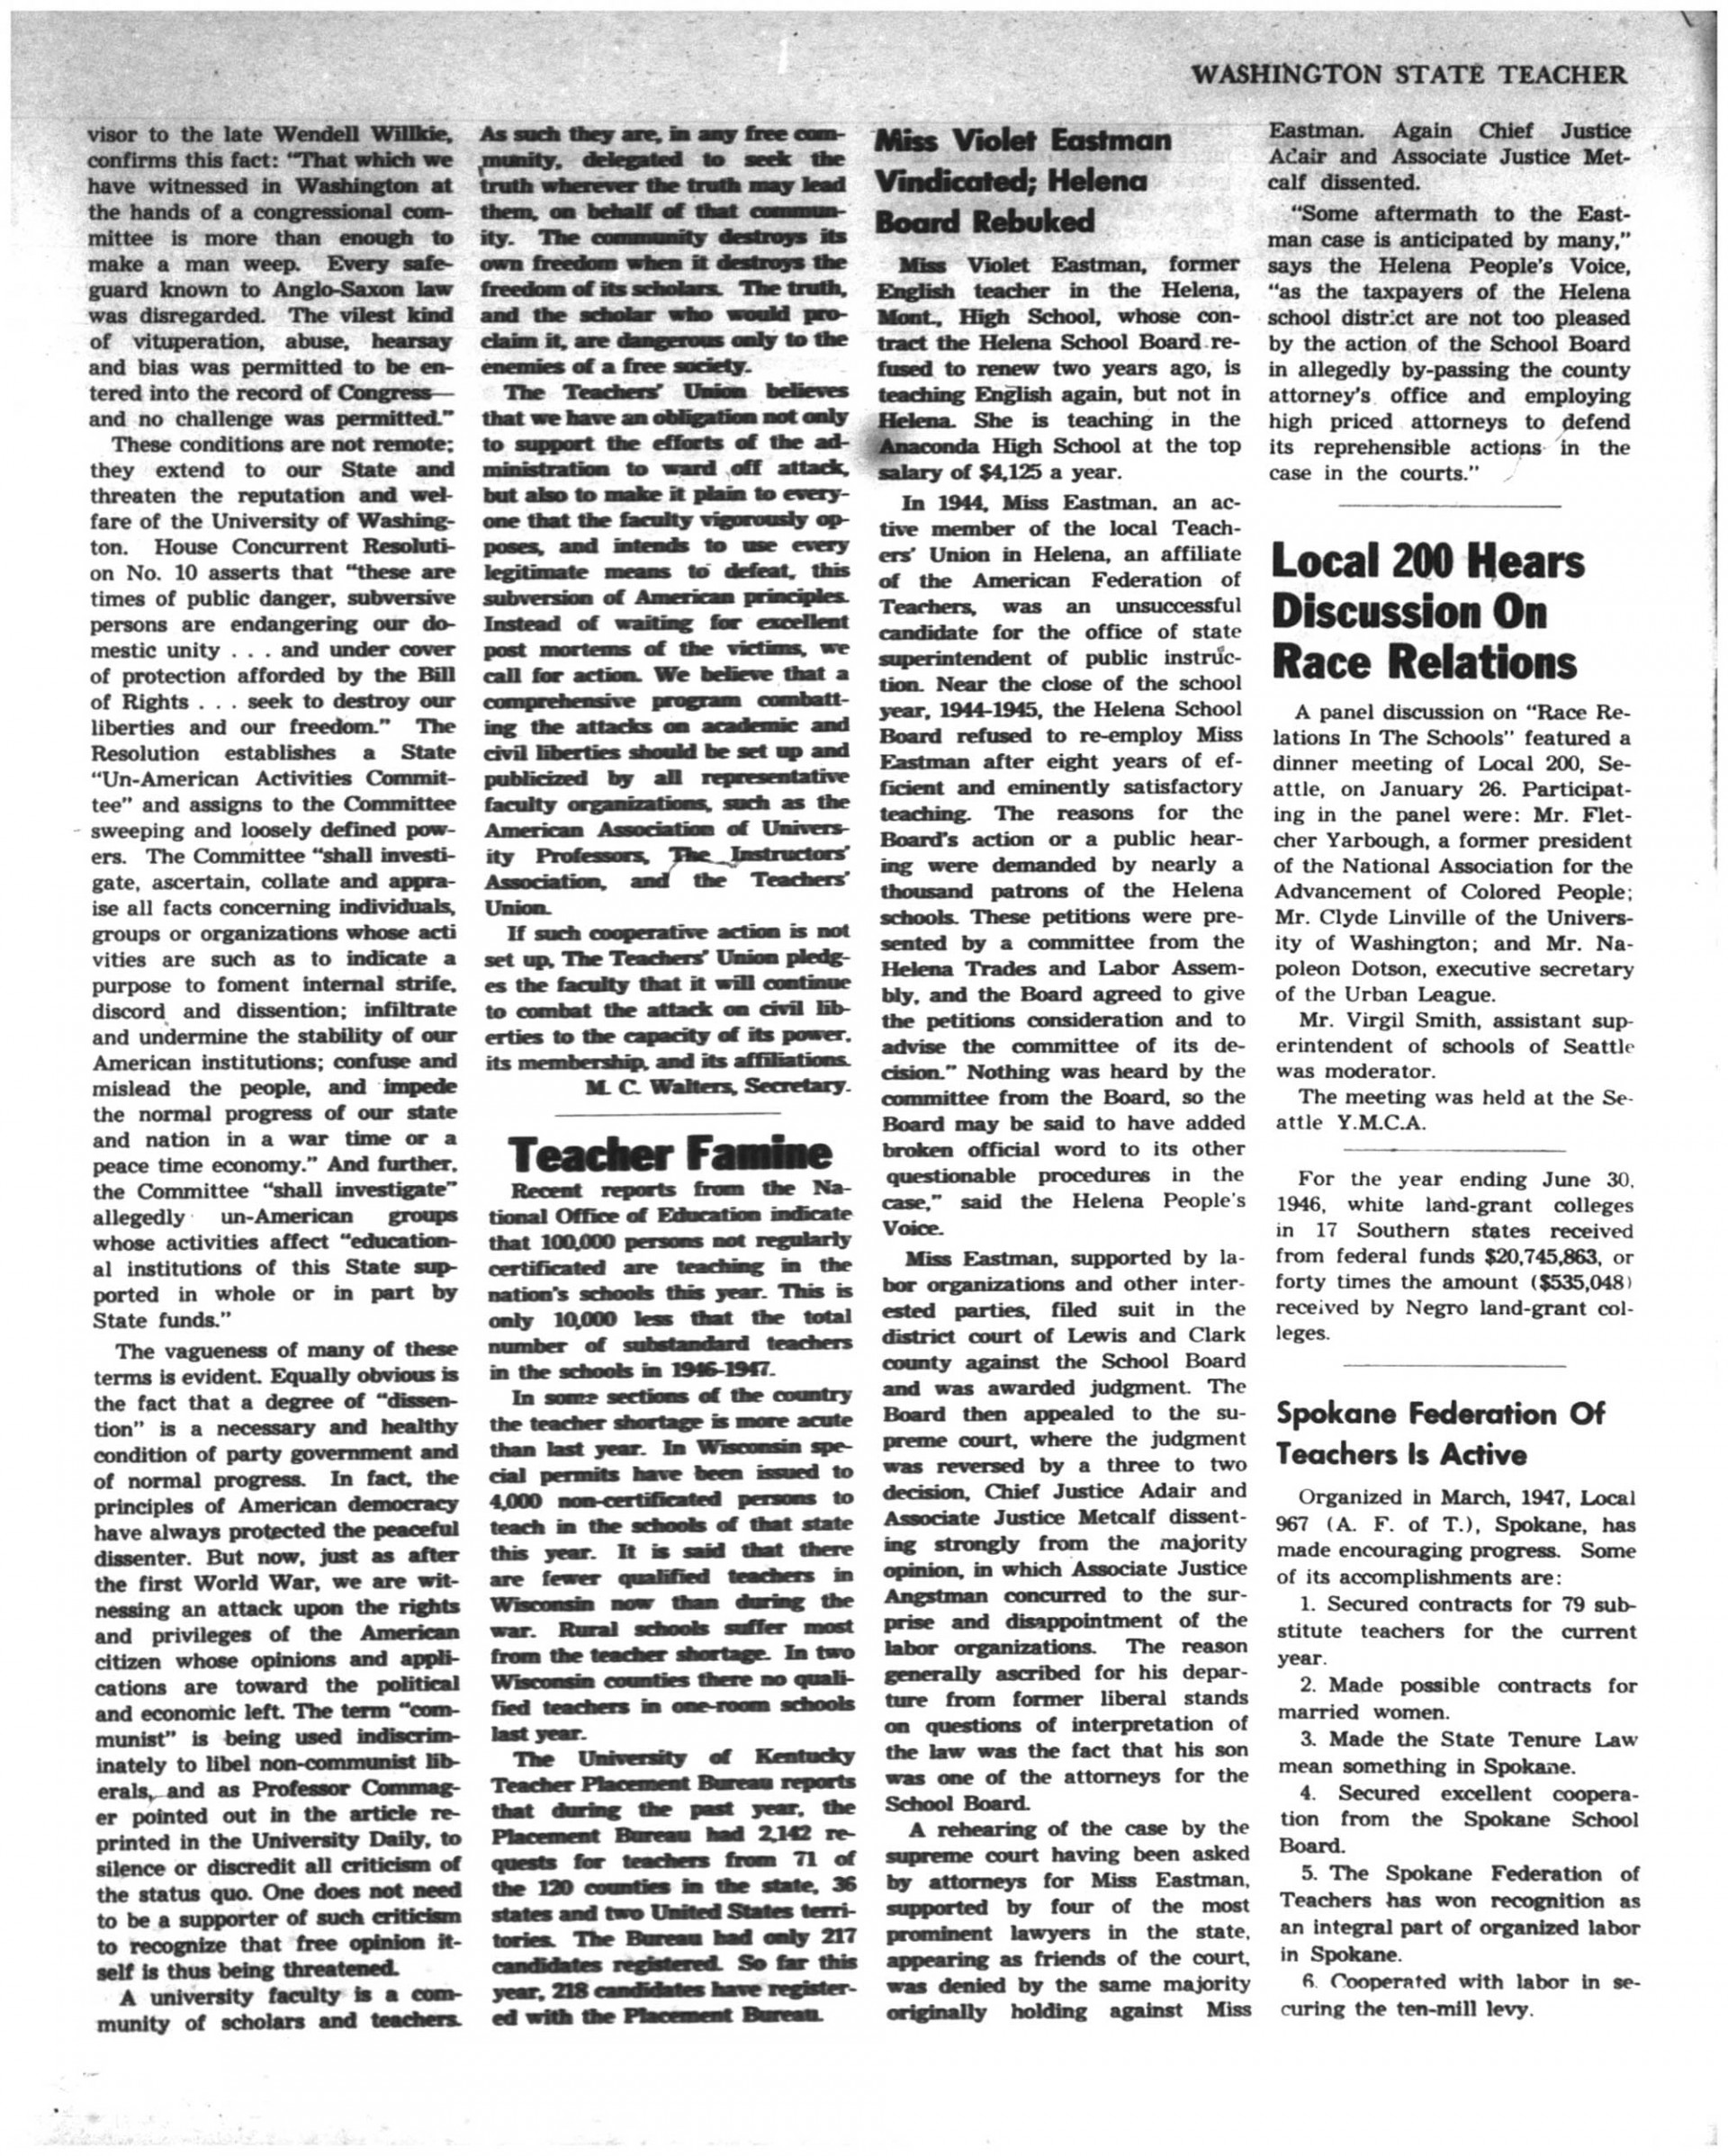 013 Essay Example Concept Examples Mar1948p320uw20local20401 Race Large Stunning Topic Paper 1920